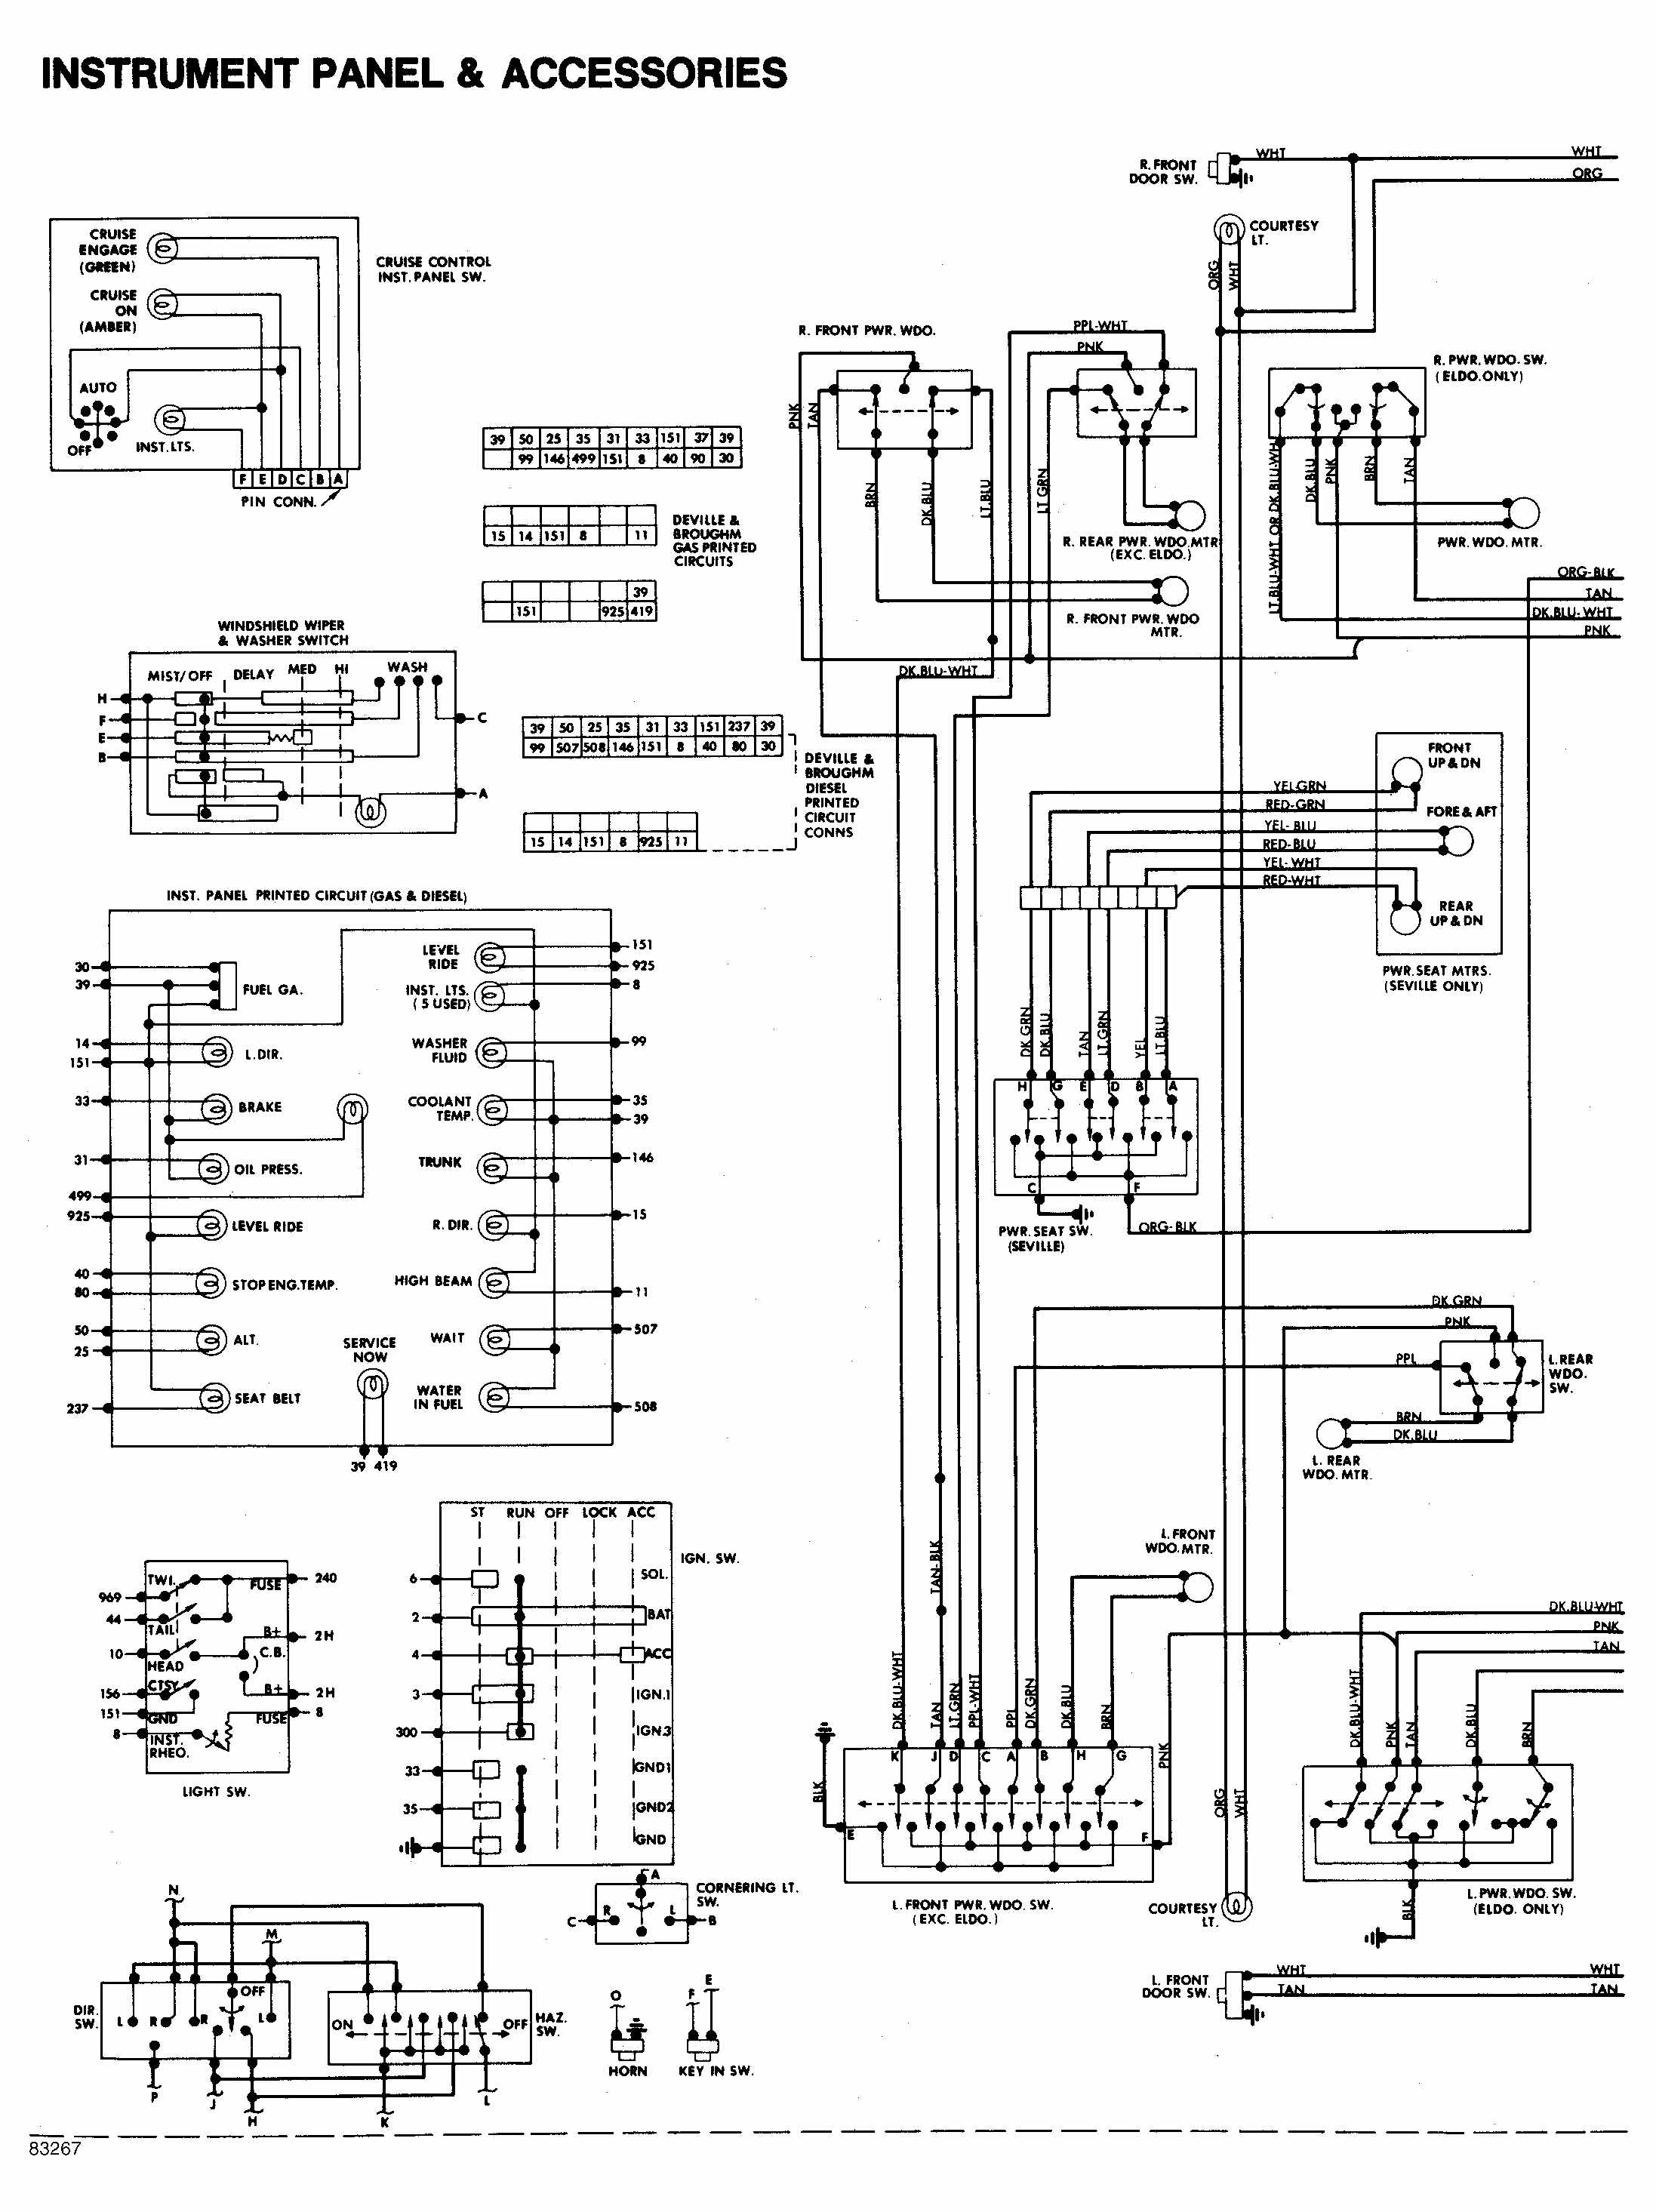 hight resolution of 1940 cadillac color wiring diagram cliccarwiring wiring diagram m6 1940 cadillac color wiring diagram cliccarwiring